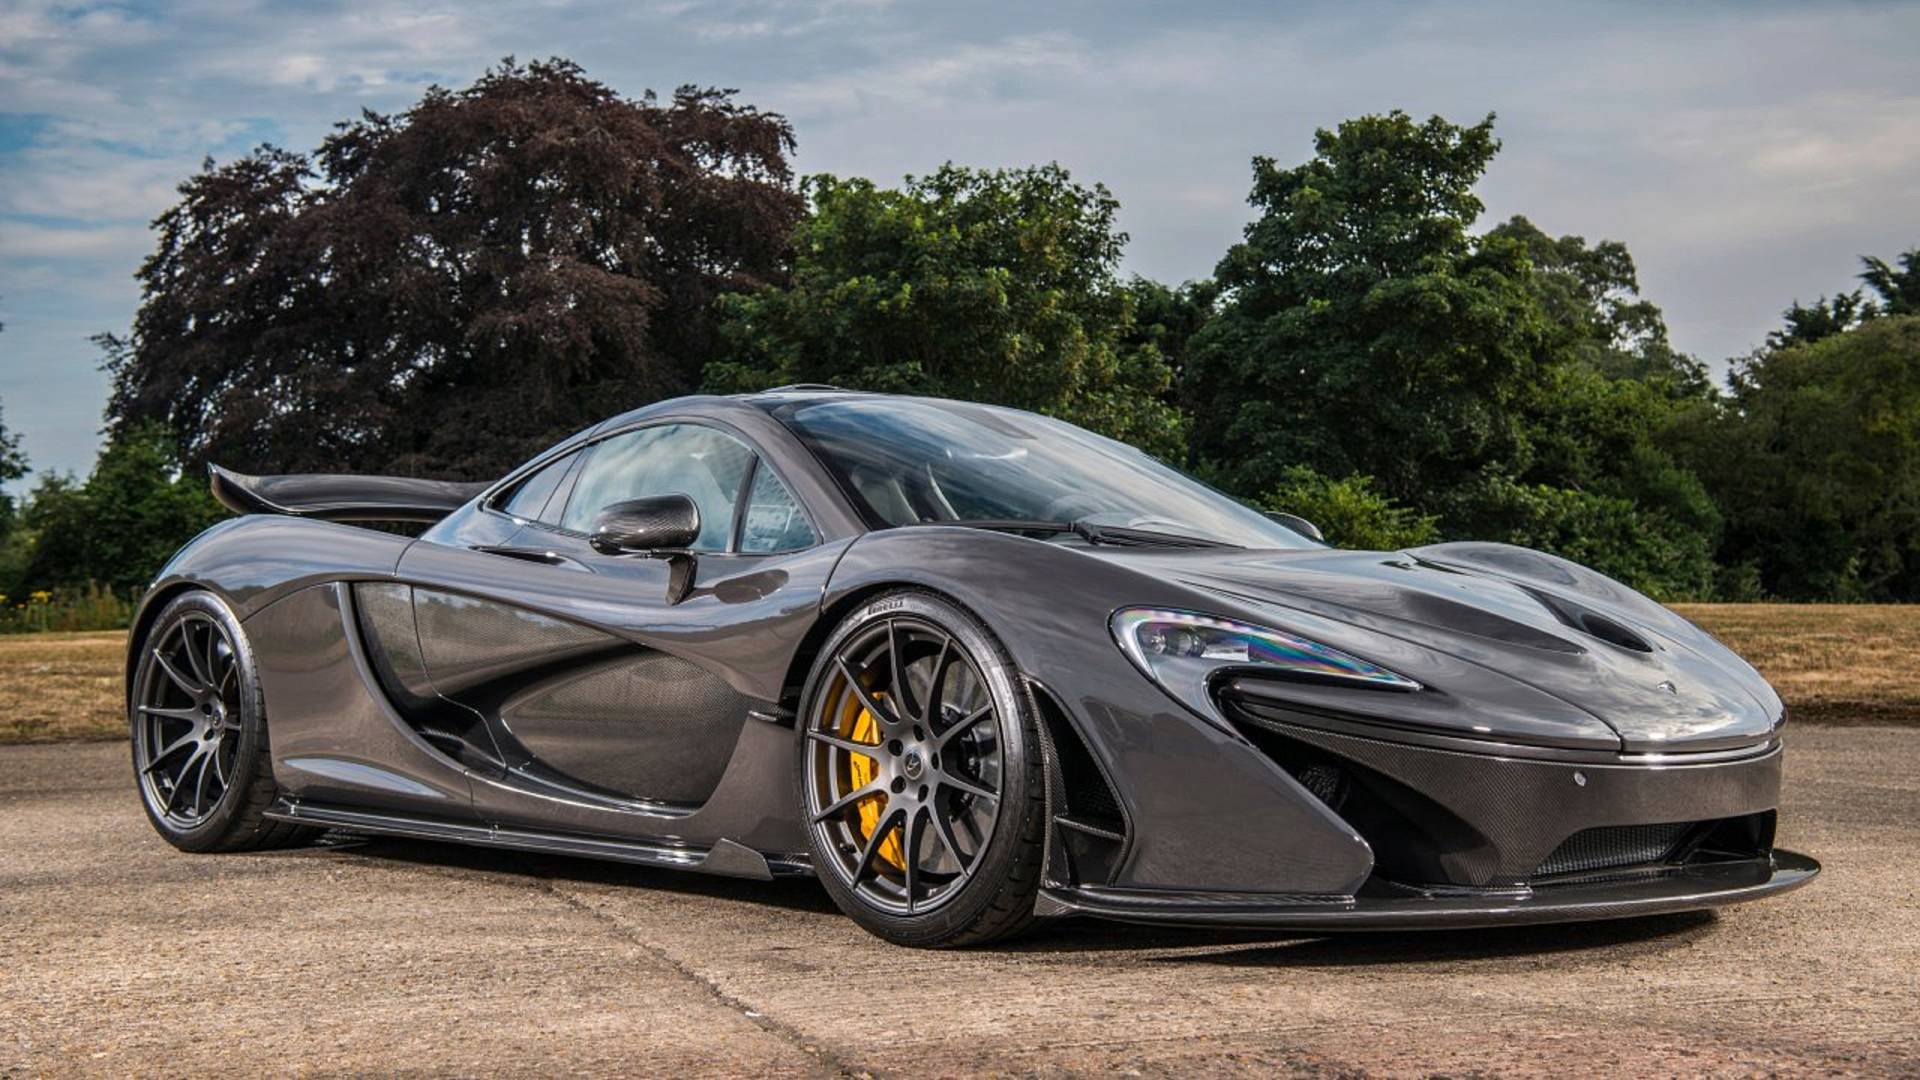 want to own jenson button's mclaren?